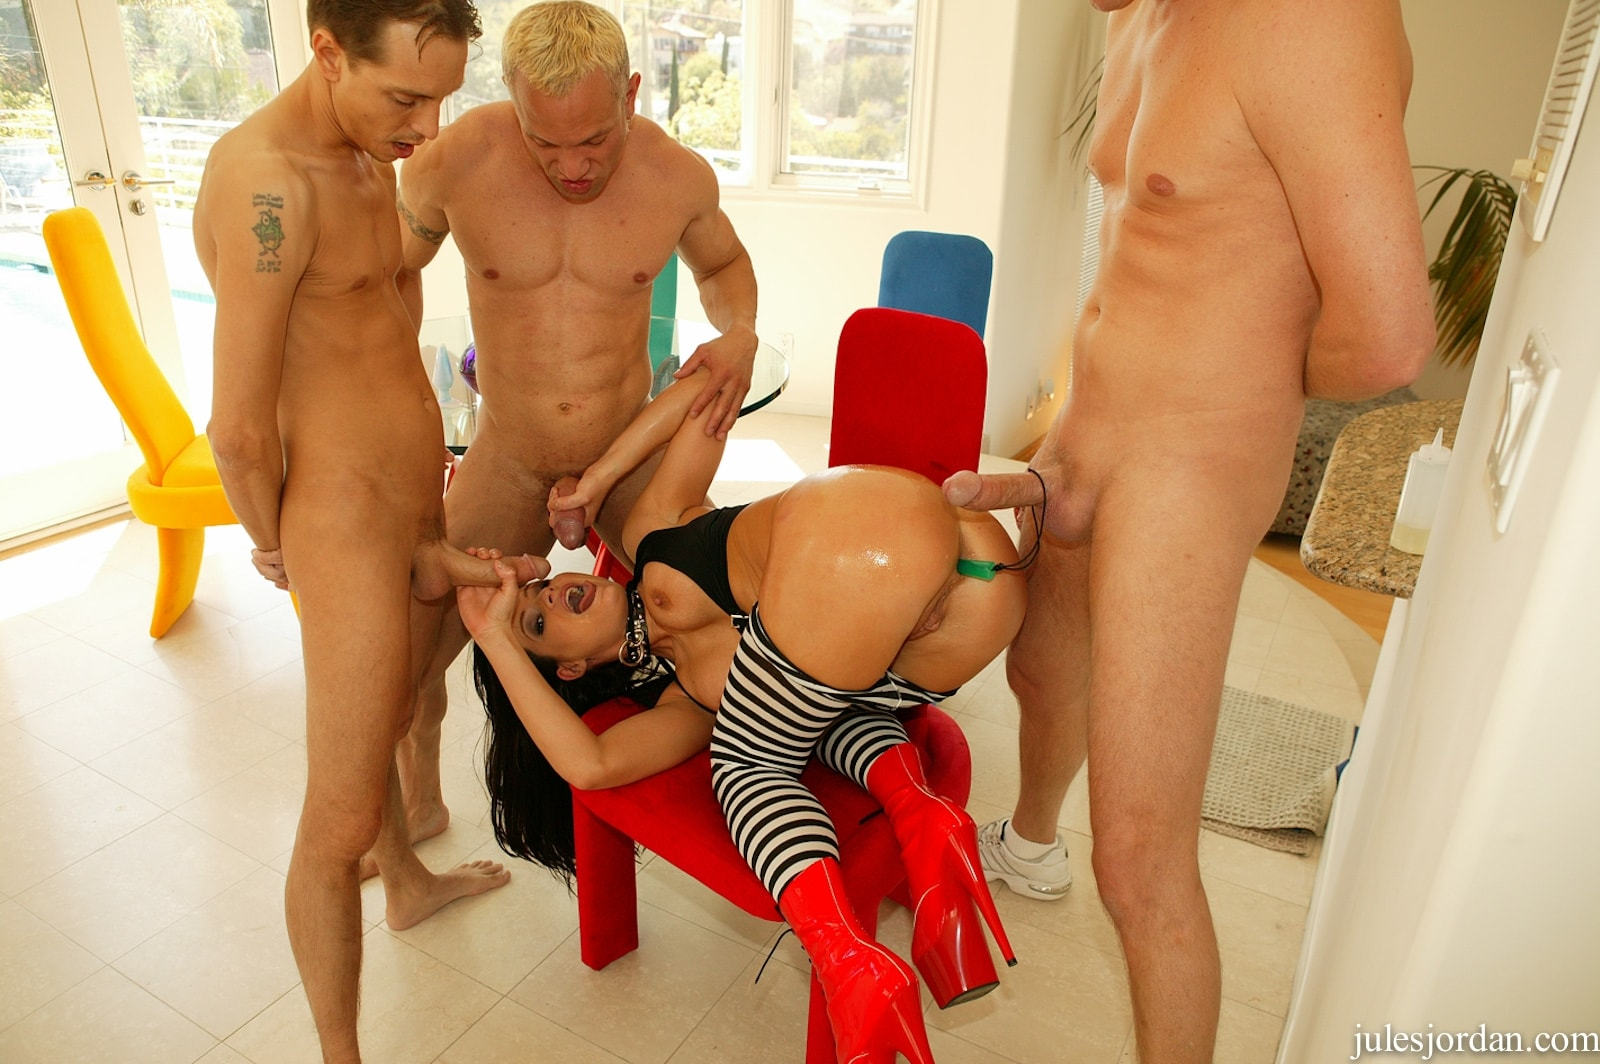 Jules Jordan 'DP Anal Creampie' starring Kami Andrews (Photo 5)